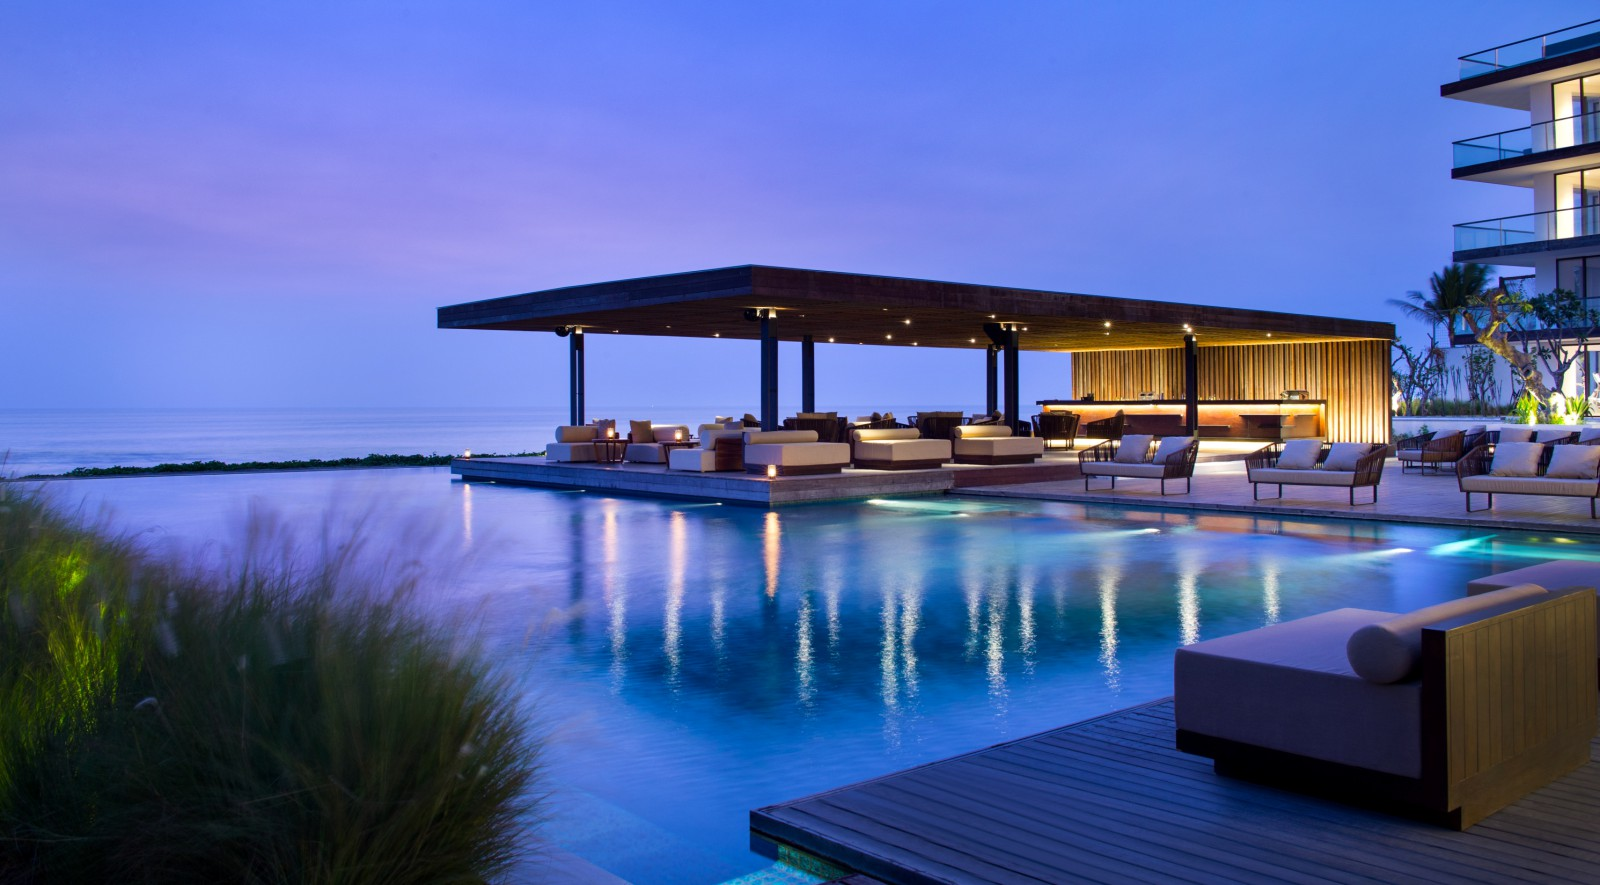 Alila Seminyak By Urbnarc A As Architecture